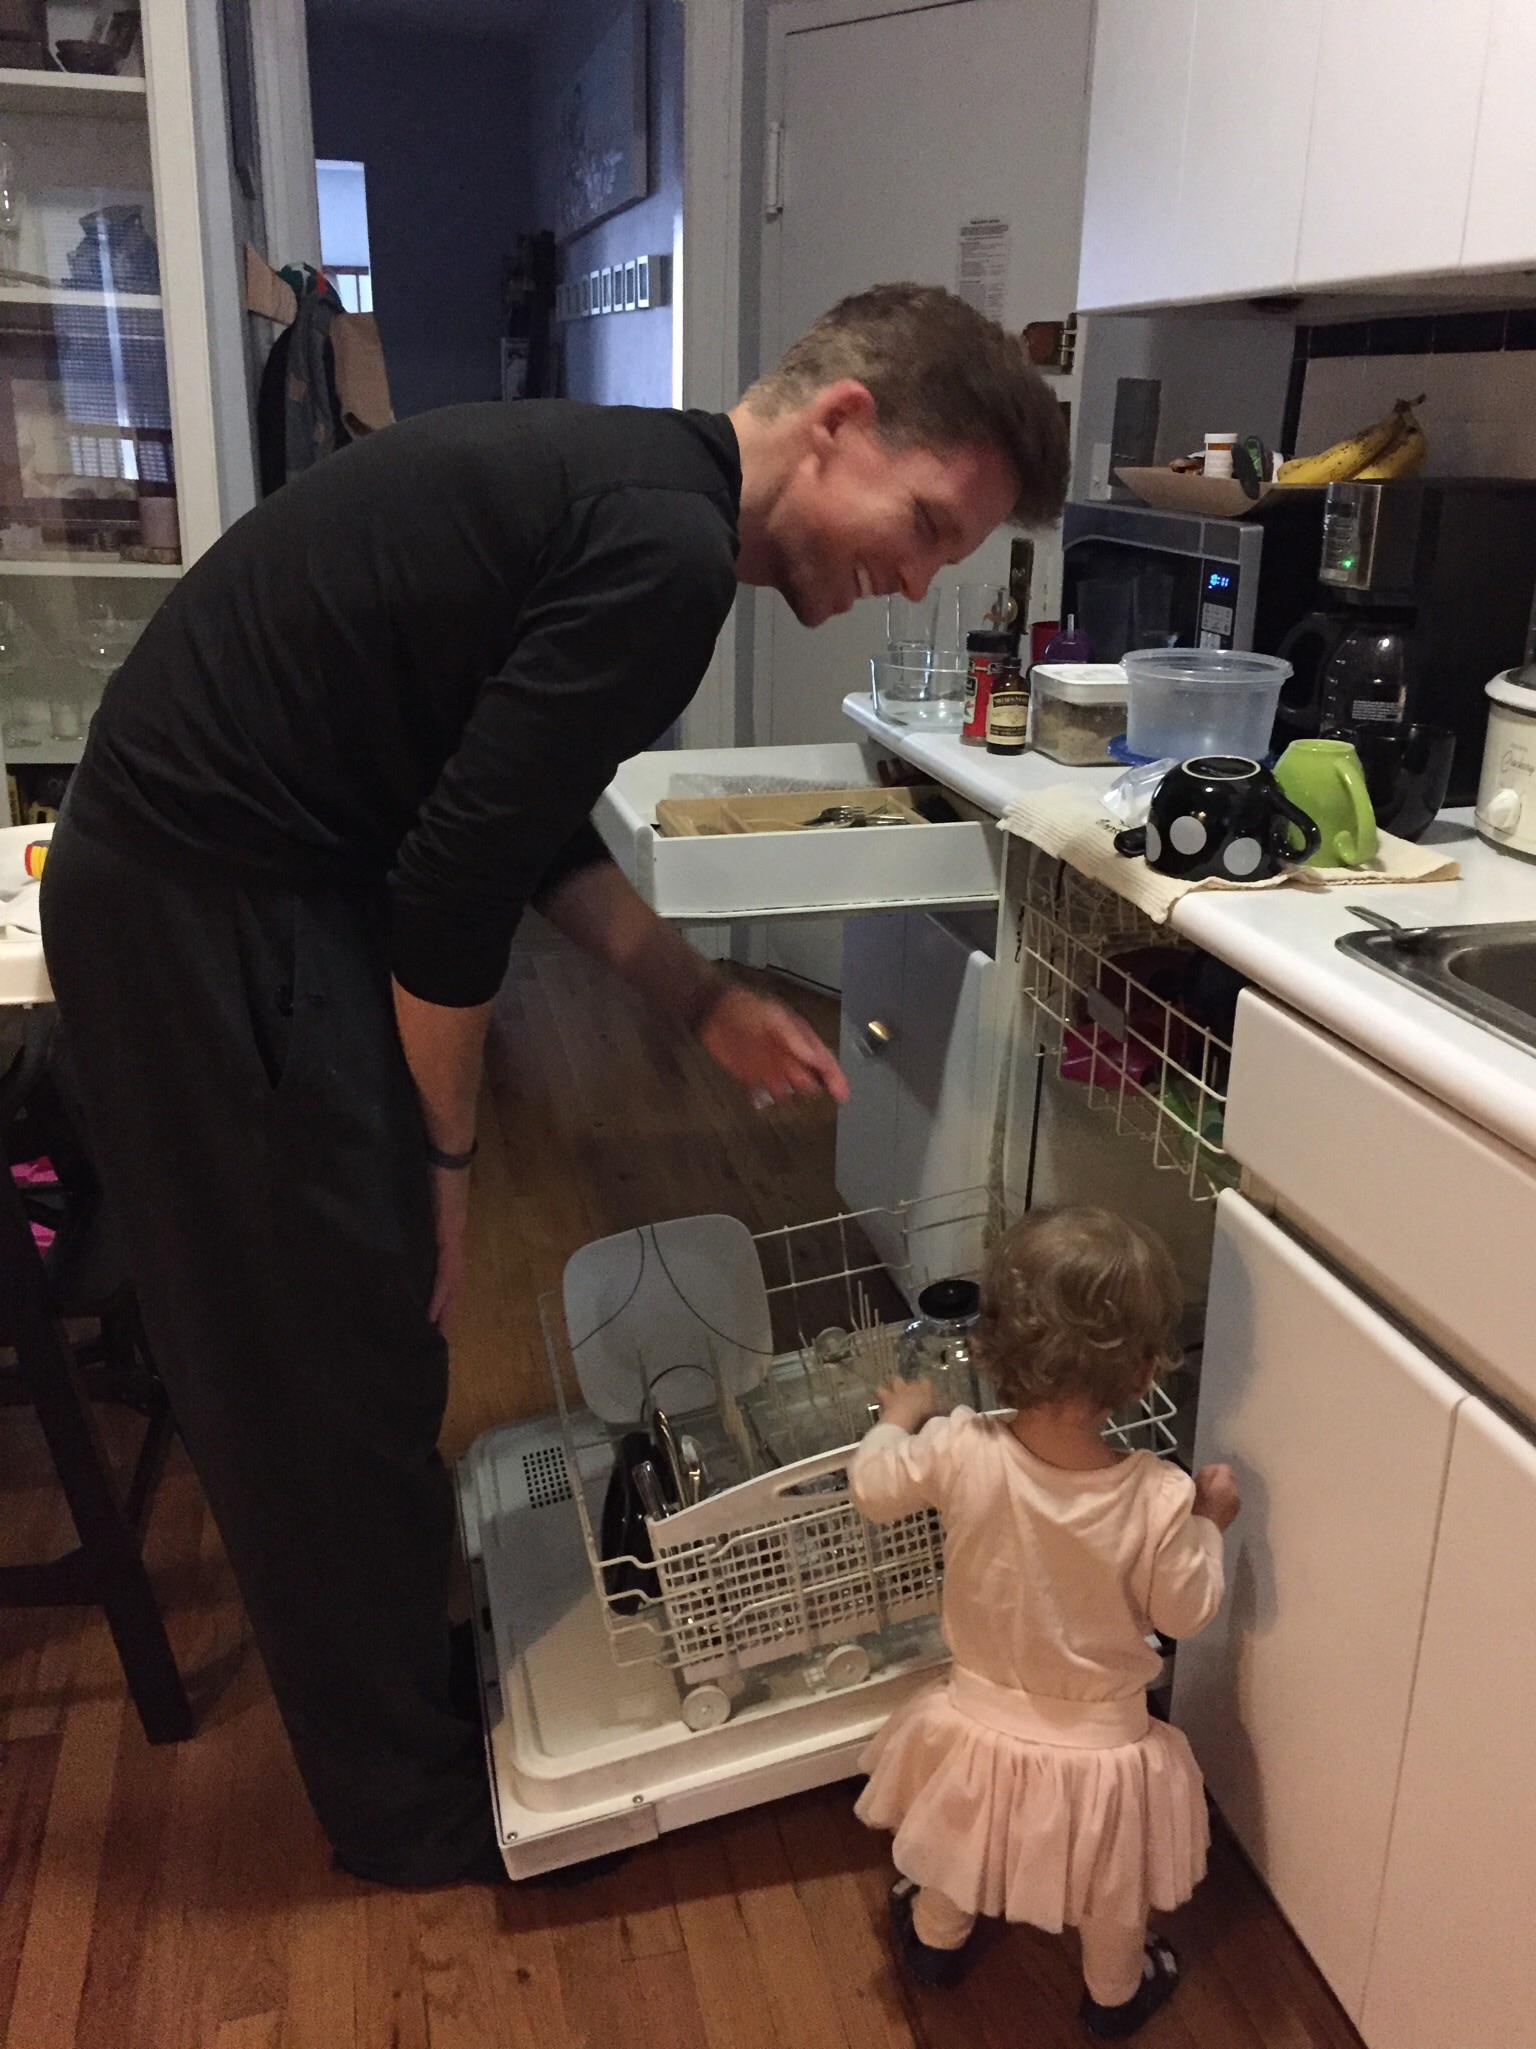 Lucie's finally pulling her weight! Helping Dada empty the dishwasher.